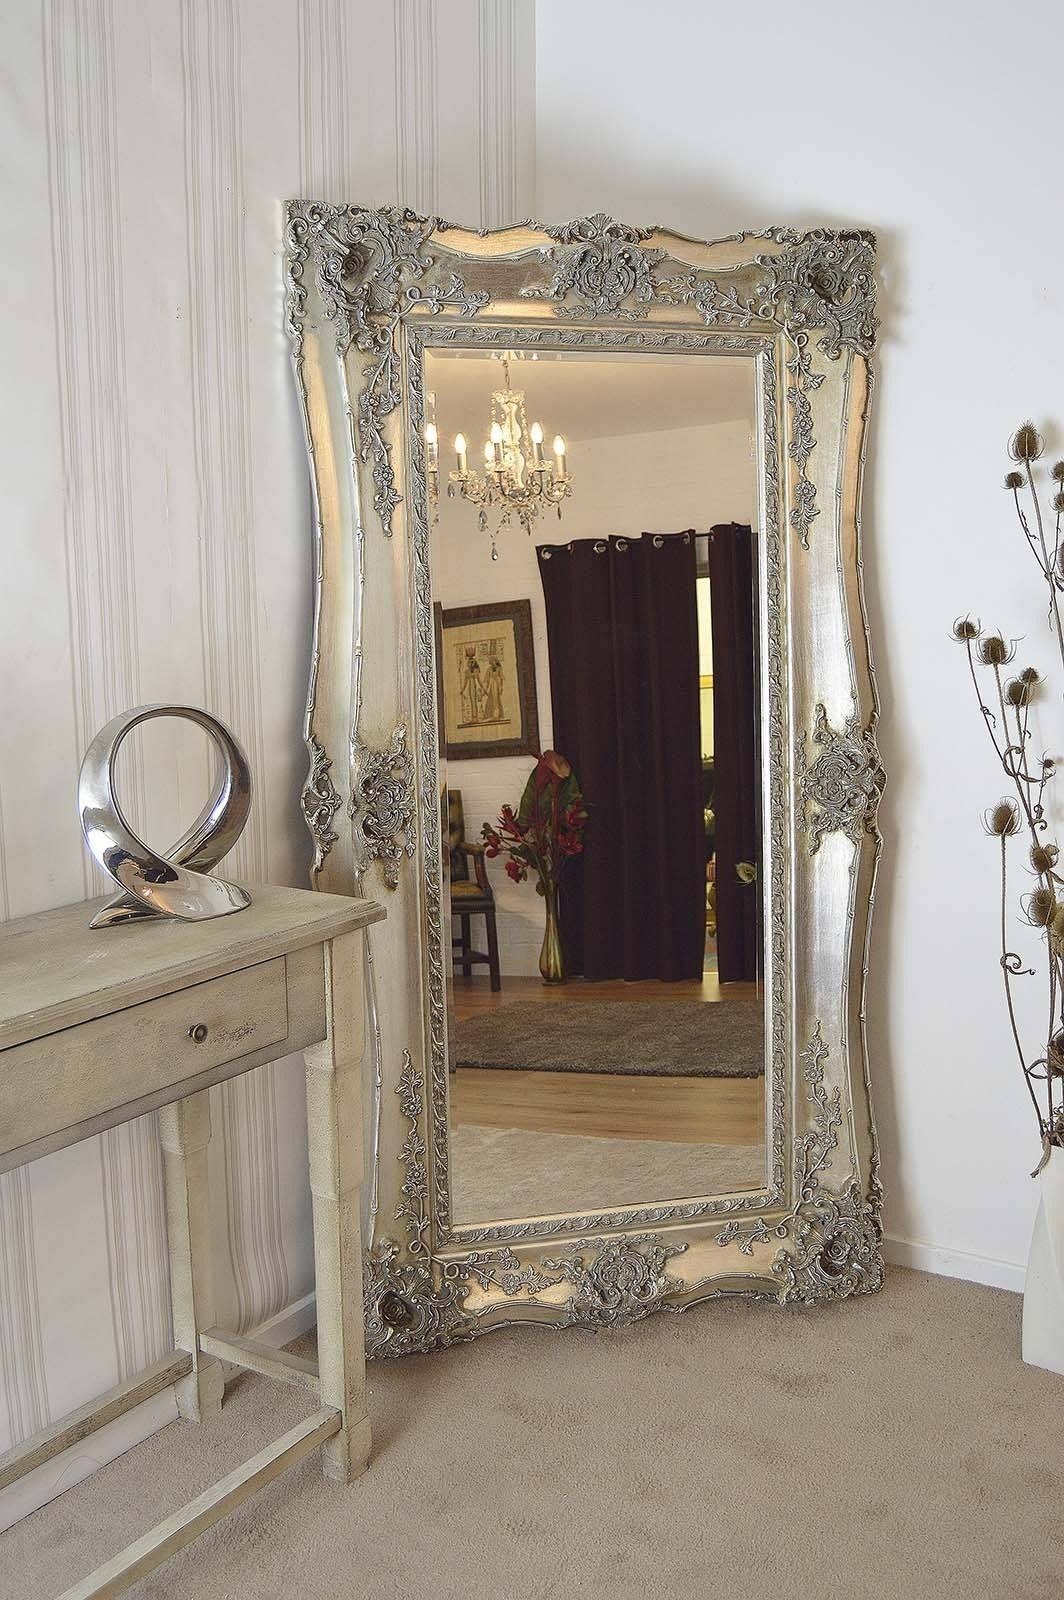 Antique Full Length Wall Mirrors Antique Wood Framed Wall Mirrors With Regard To Antique Long Mirrors (View 4 of 15)